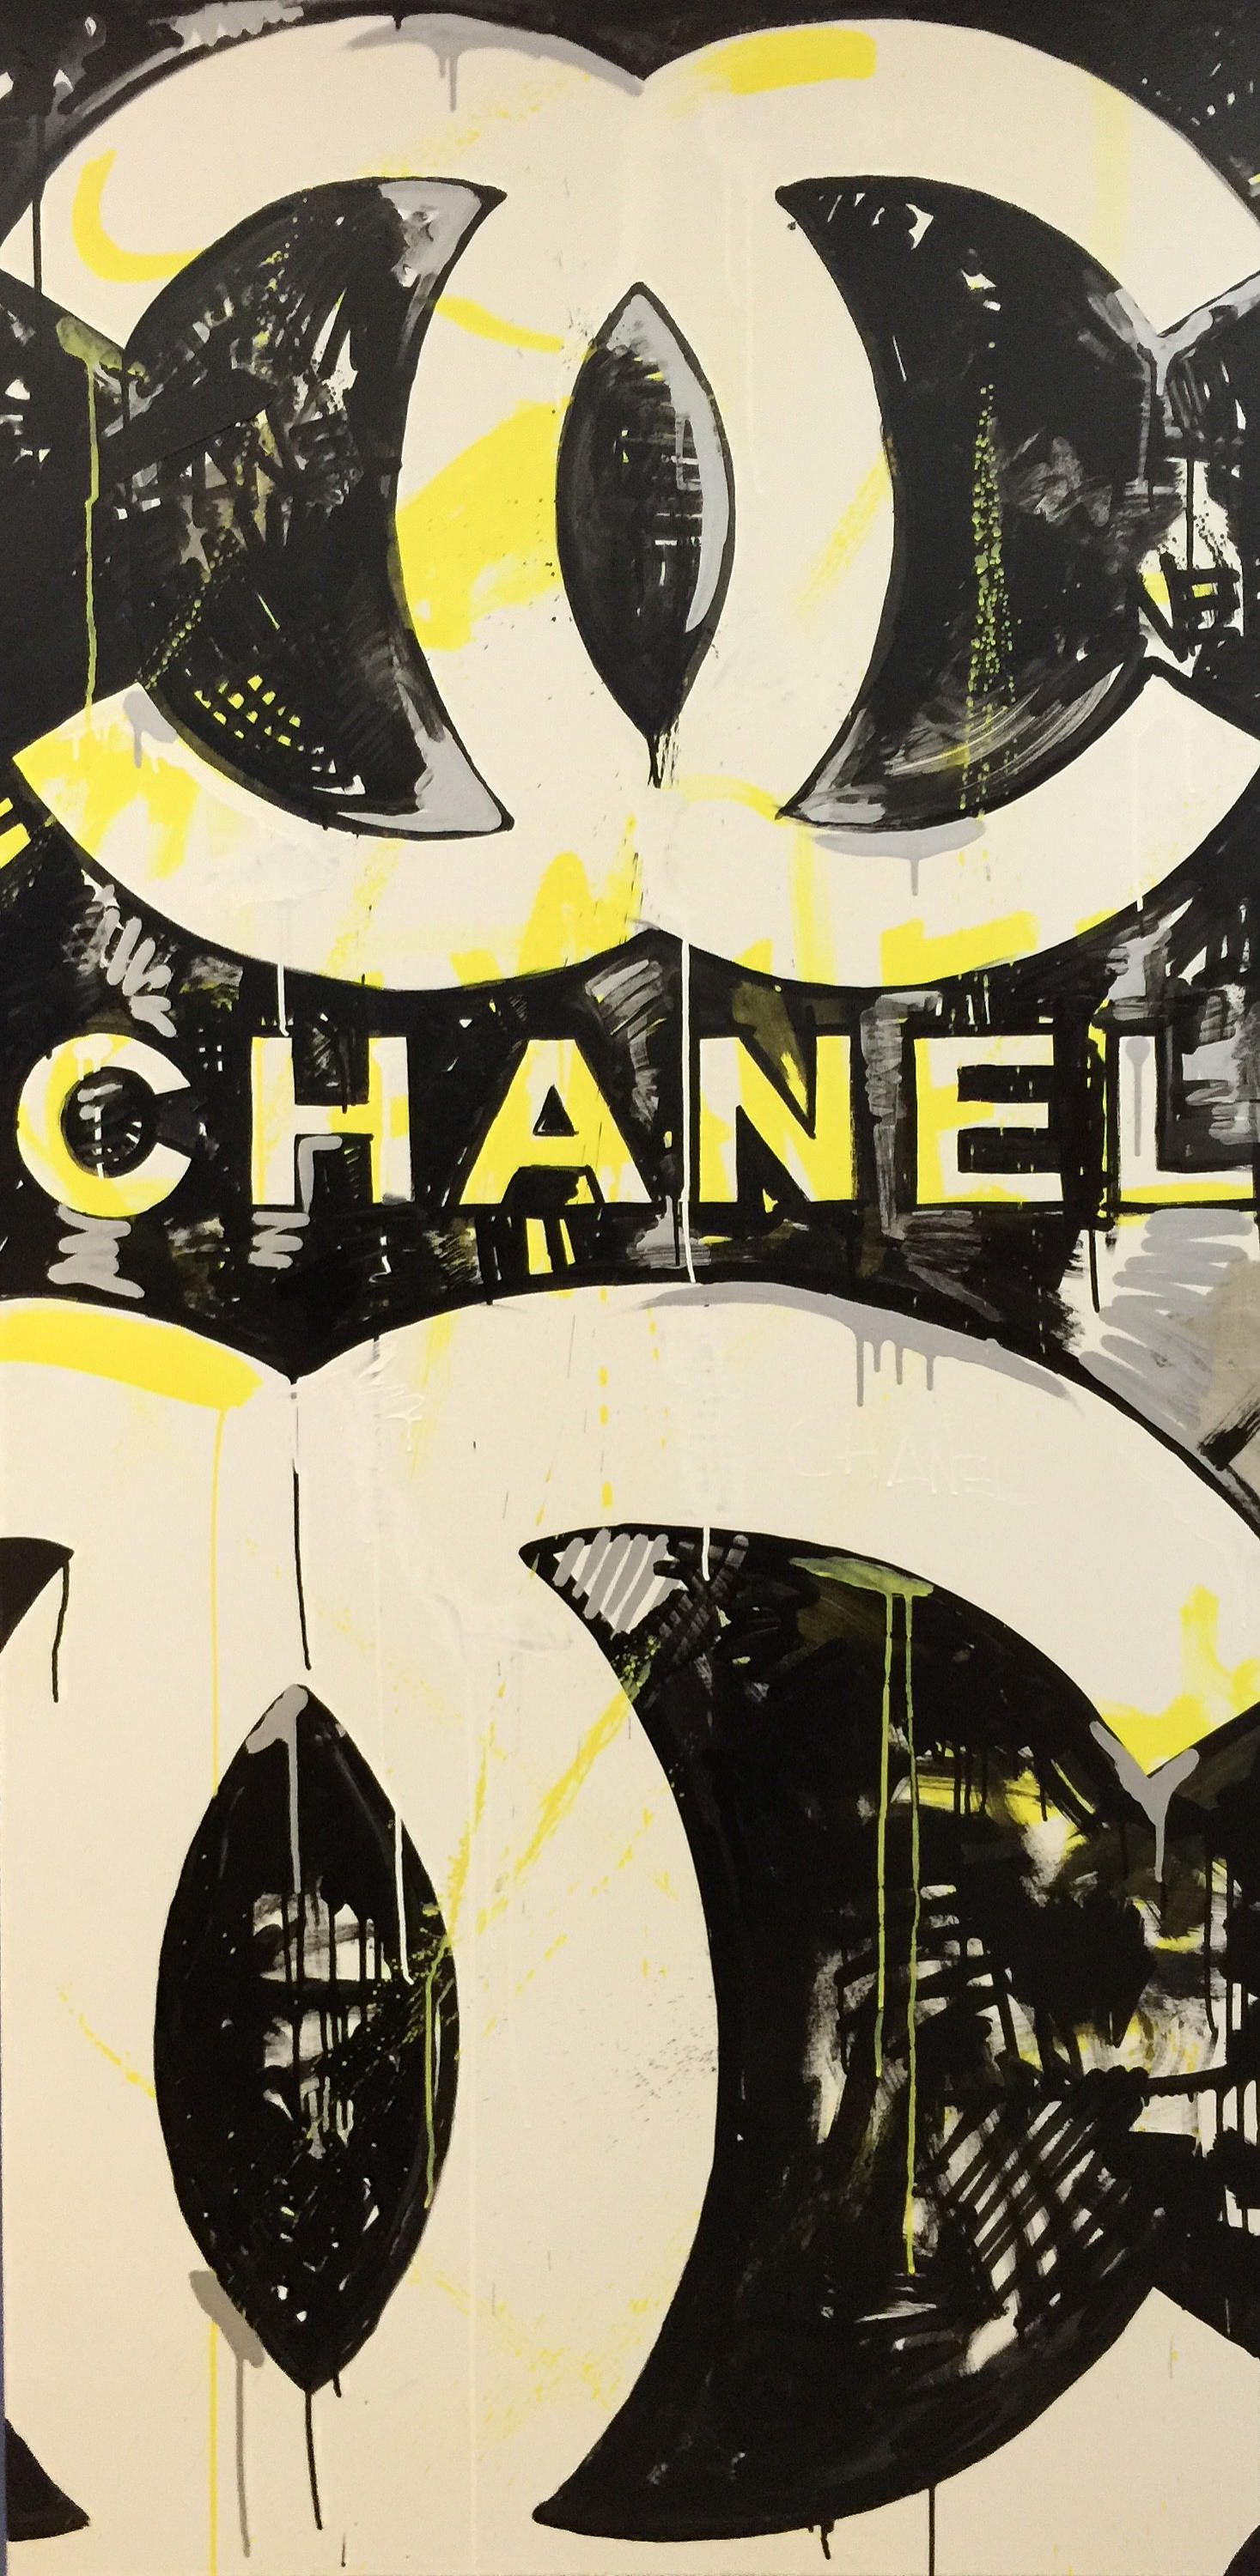 Chanel art pop art by matt pecson chanel wall art chanel painting chanel bedroom decor best selling items made to order by matt pecson on etsy